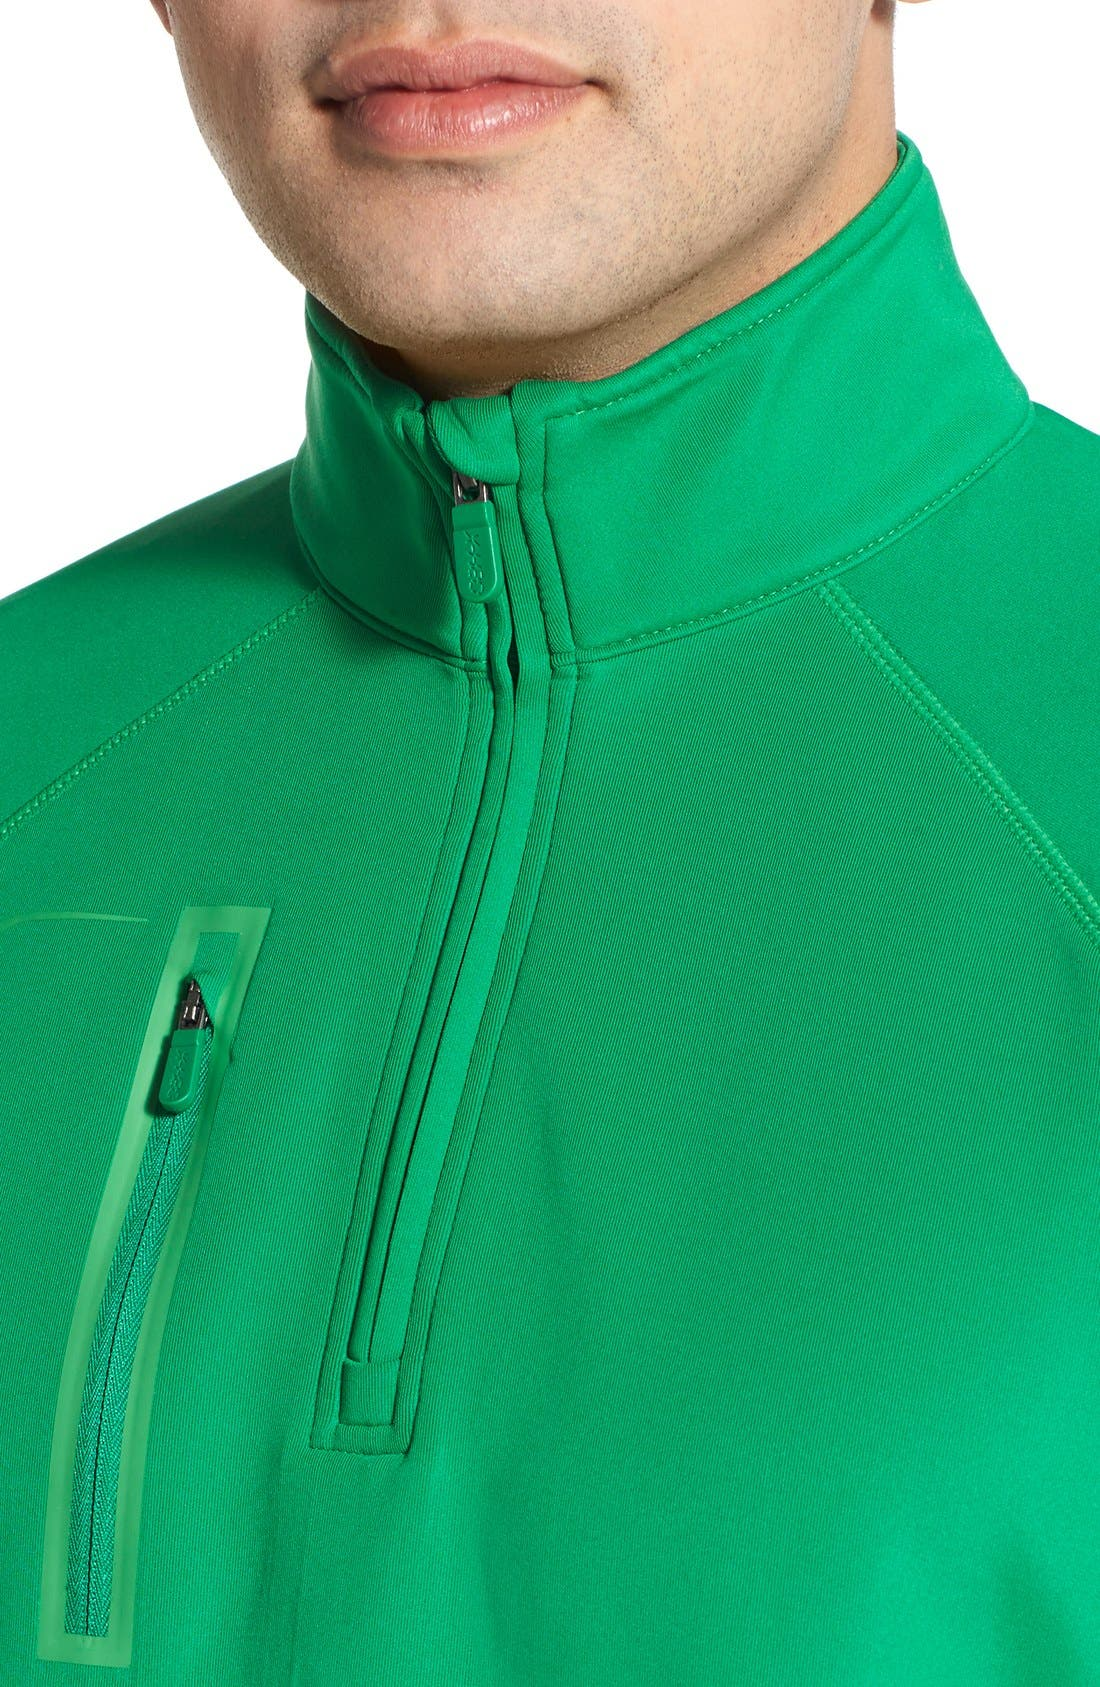 XH2O Crawford Stretch Quarter Zip Golf Pullover,                             Alternate thumbnail 45, color,